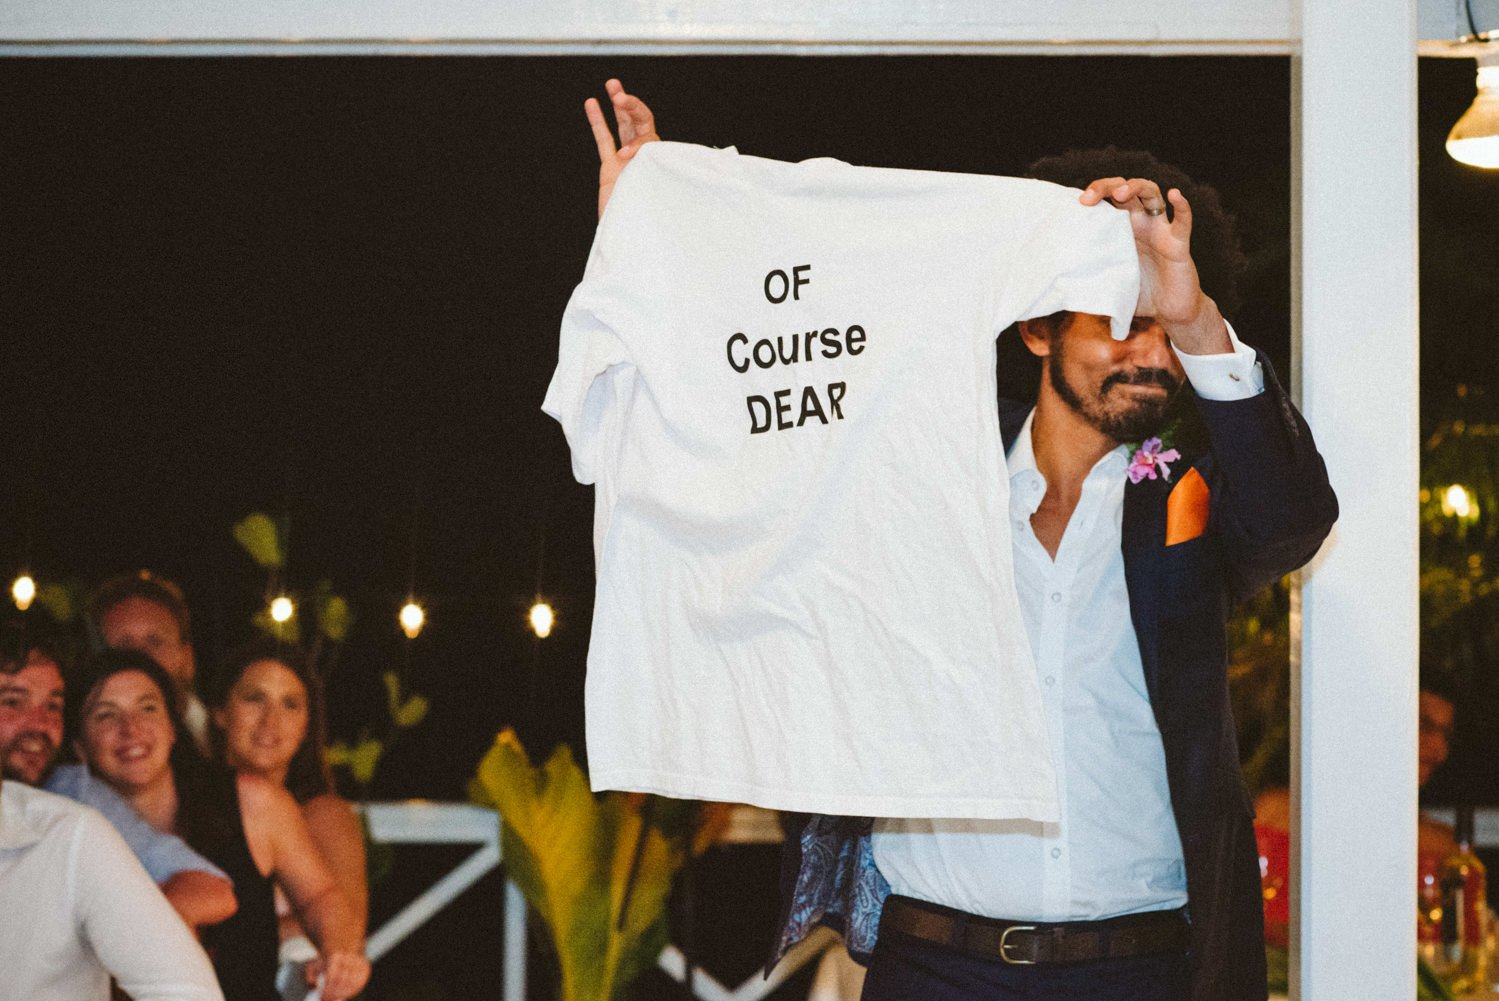 Of Course Dear T-shirt for groom Tobago wedding